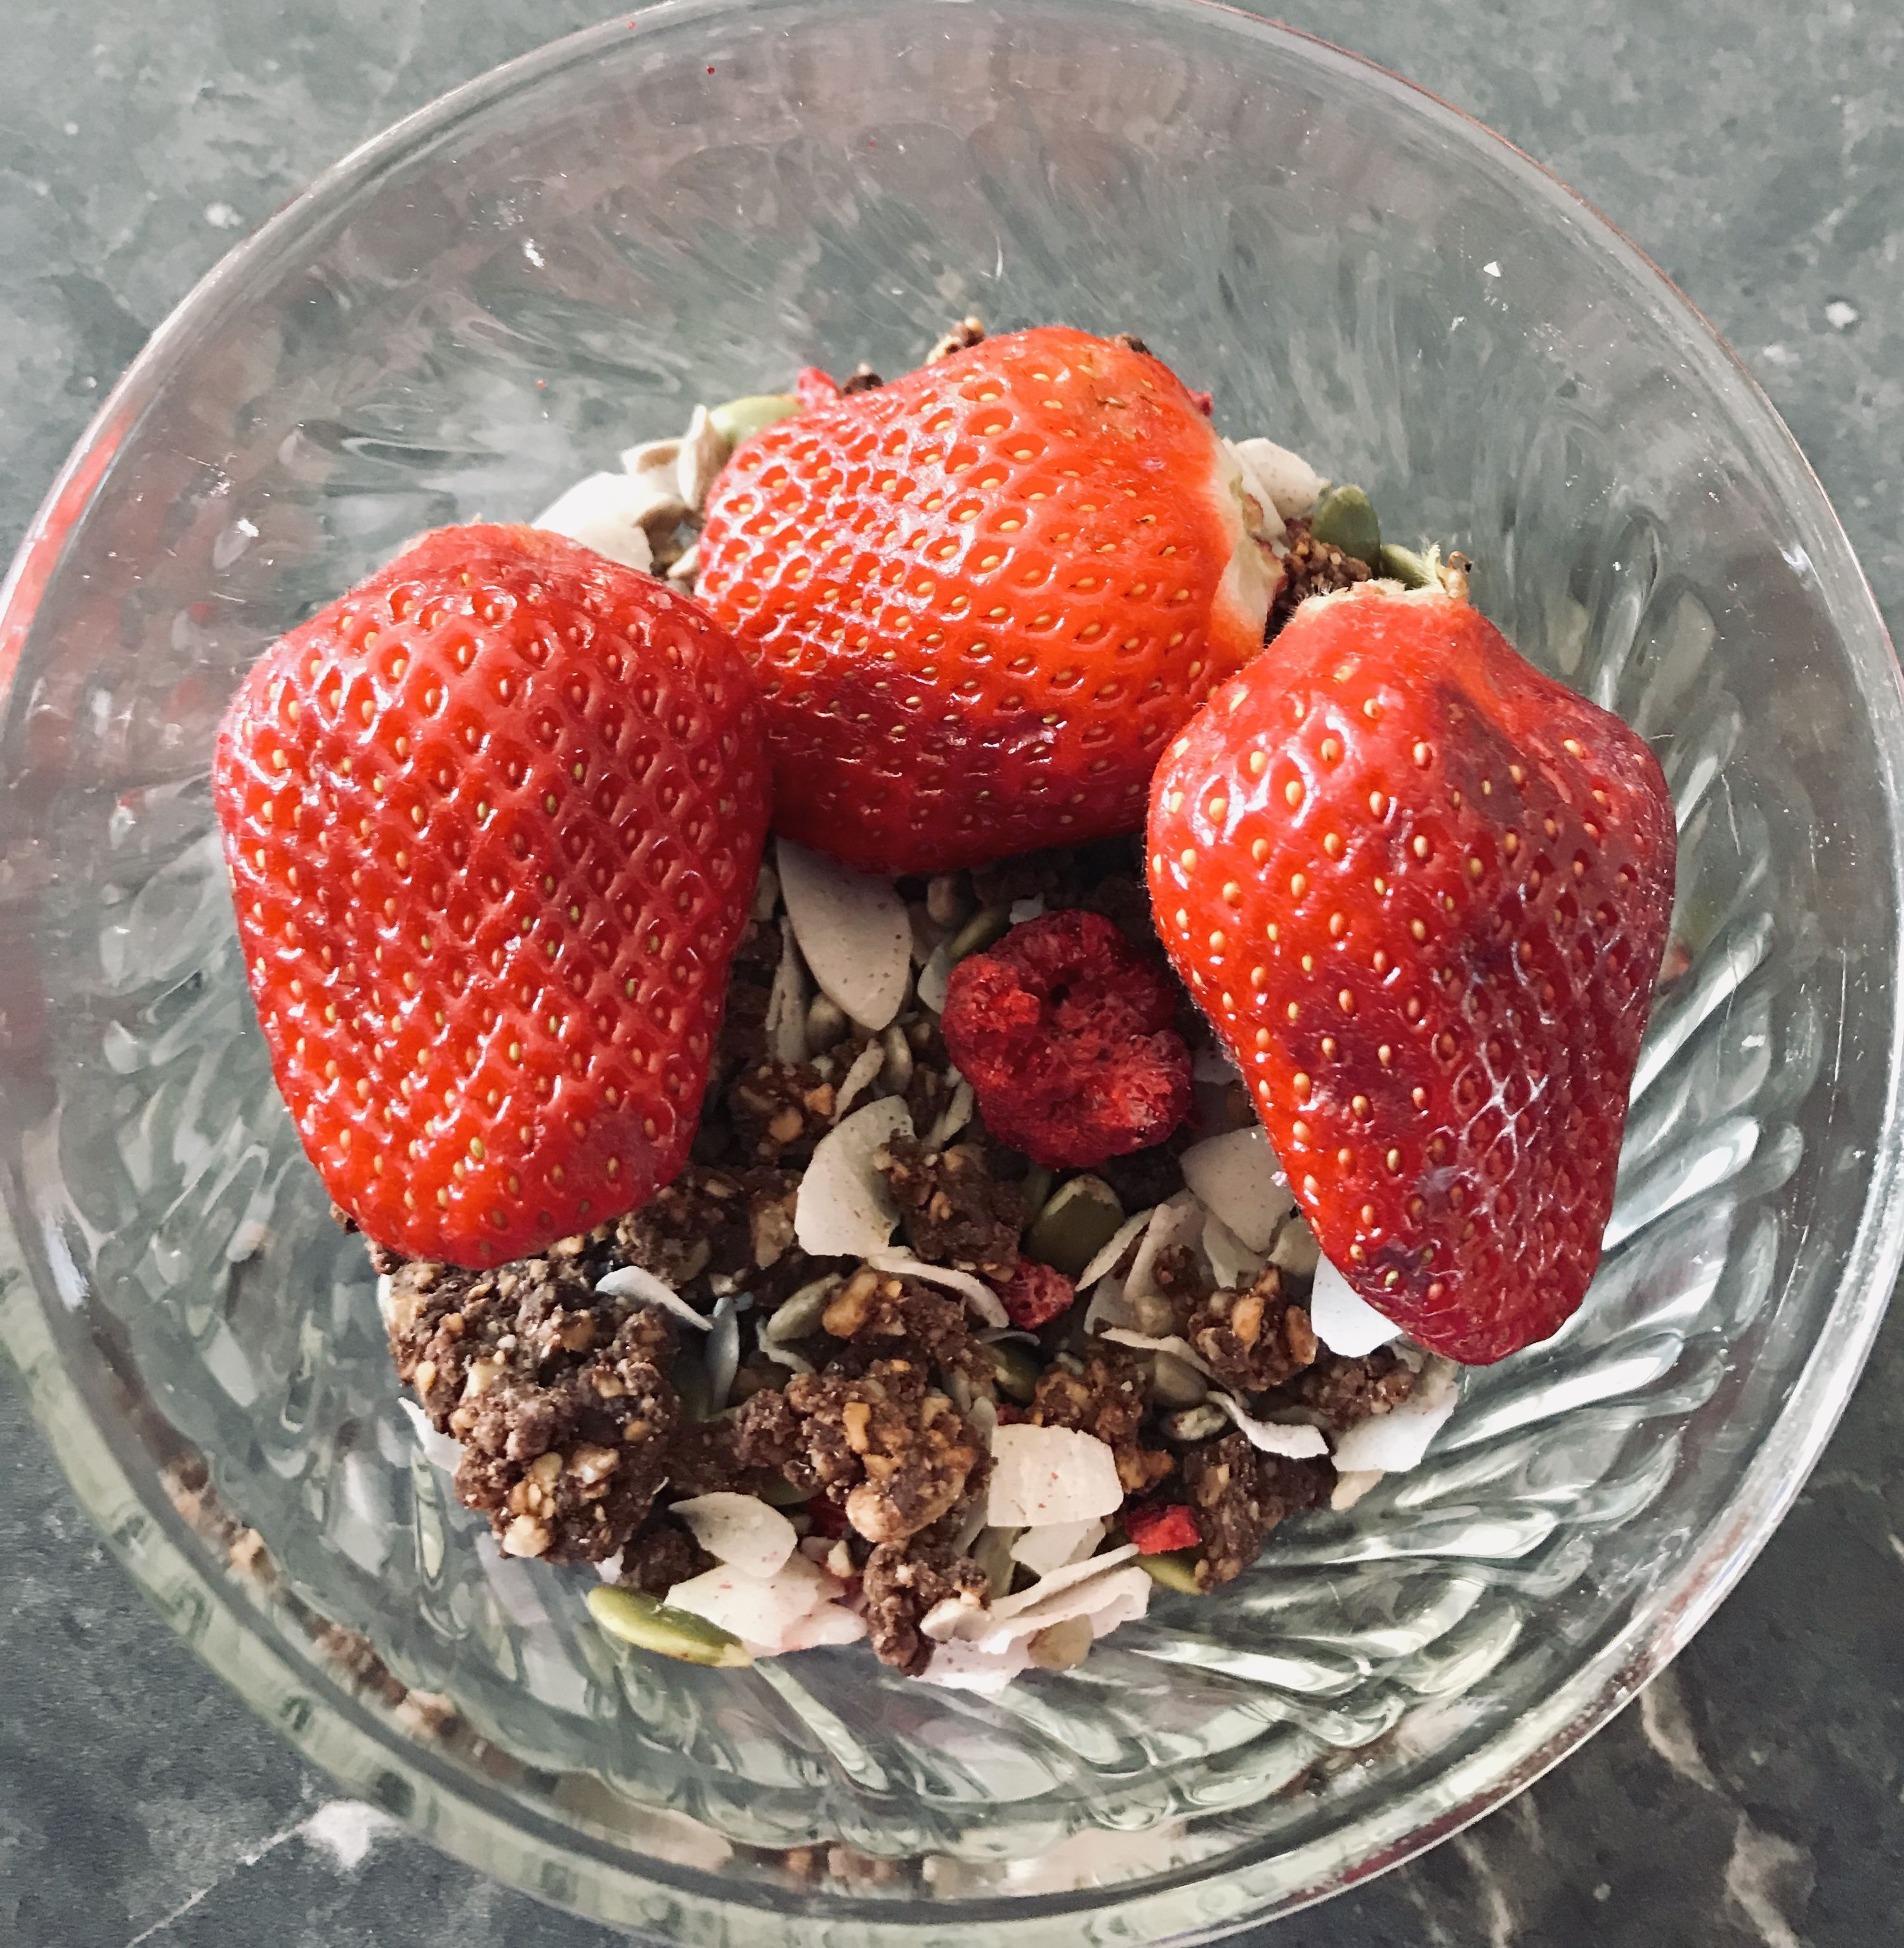 Best breakfast! Peanut chocolate clusters, coconut flakes and freeze dried raspberries #freezedriedraspberries Best breakfast! Peanut chocolate clusters, coconut flakes and freeze dried raspberries #freezedriedraspberries Best breakfast! Peanut chocolate clusters, coconut flakes and freeze dried raspberries #freezedriedraspberries Best breakfast! Peanut chocolate clusters, coconut flakes and freeze dried raspberries #freezedriedstrawberries